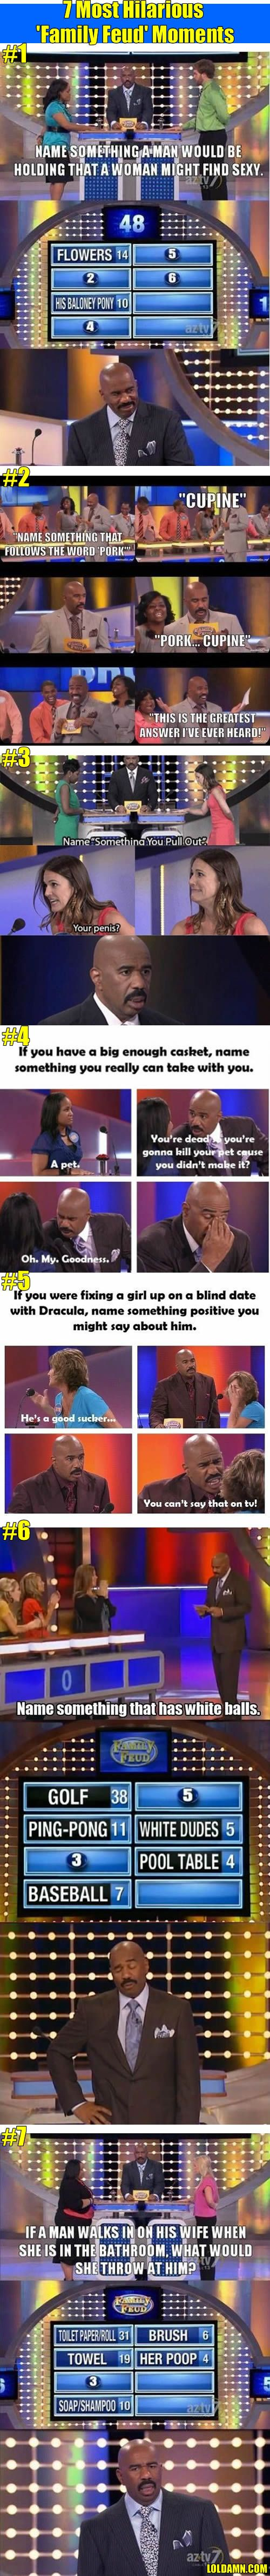 7 Most Hilarious 'Family Feud' Moments. Lol whyyyyyyy?